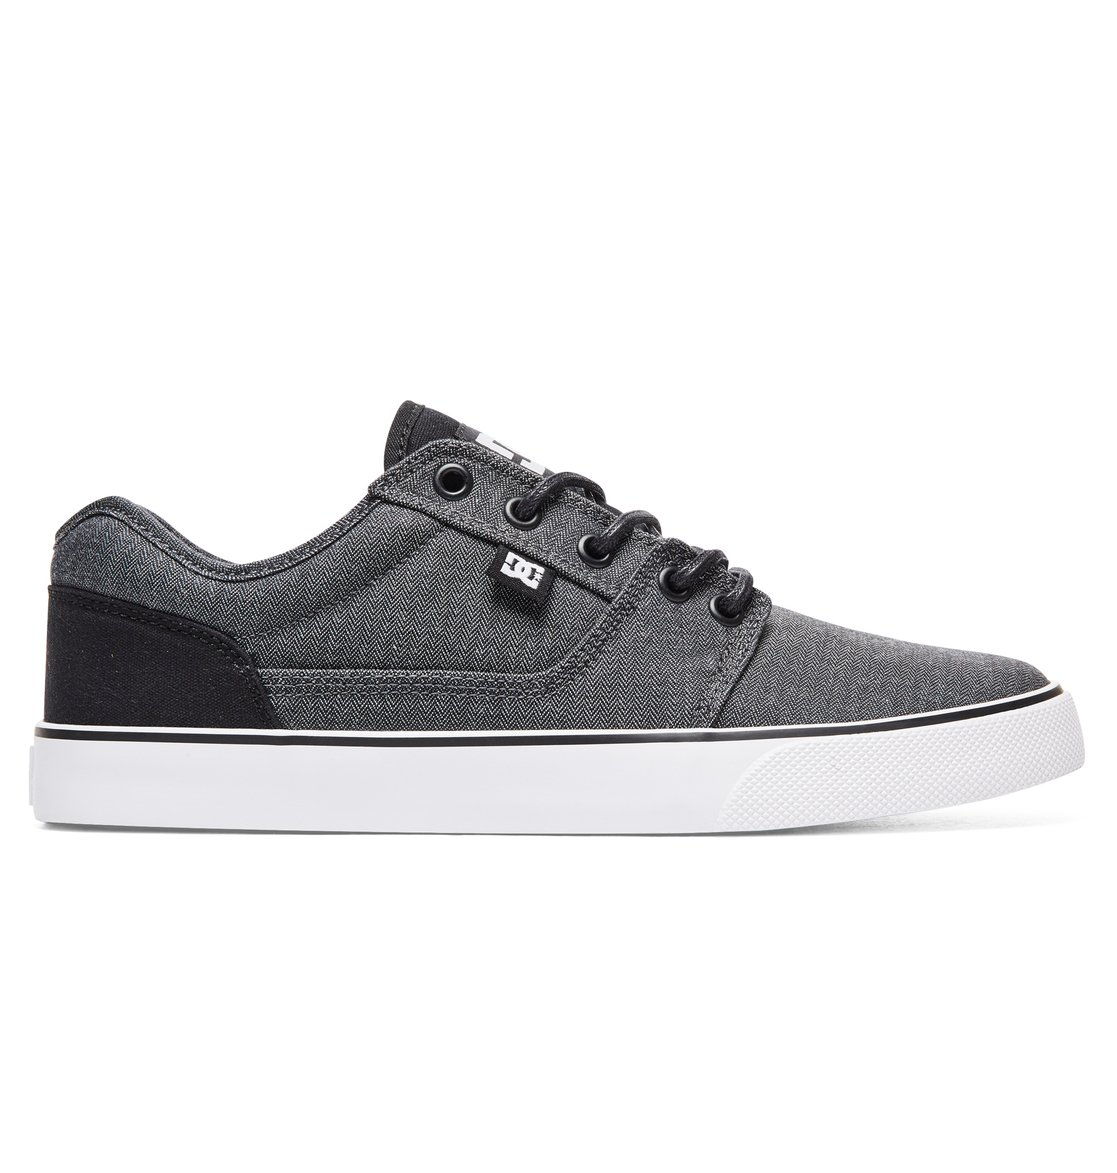 dc shoes Tonik TX SE - Scarpe da Uomo - Blue - DC Shoes